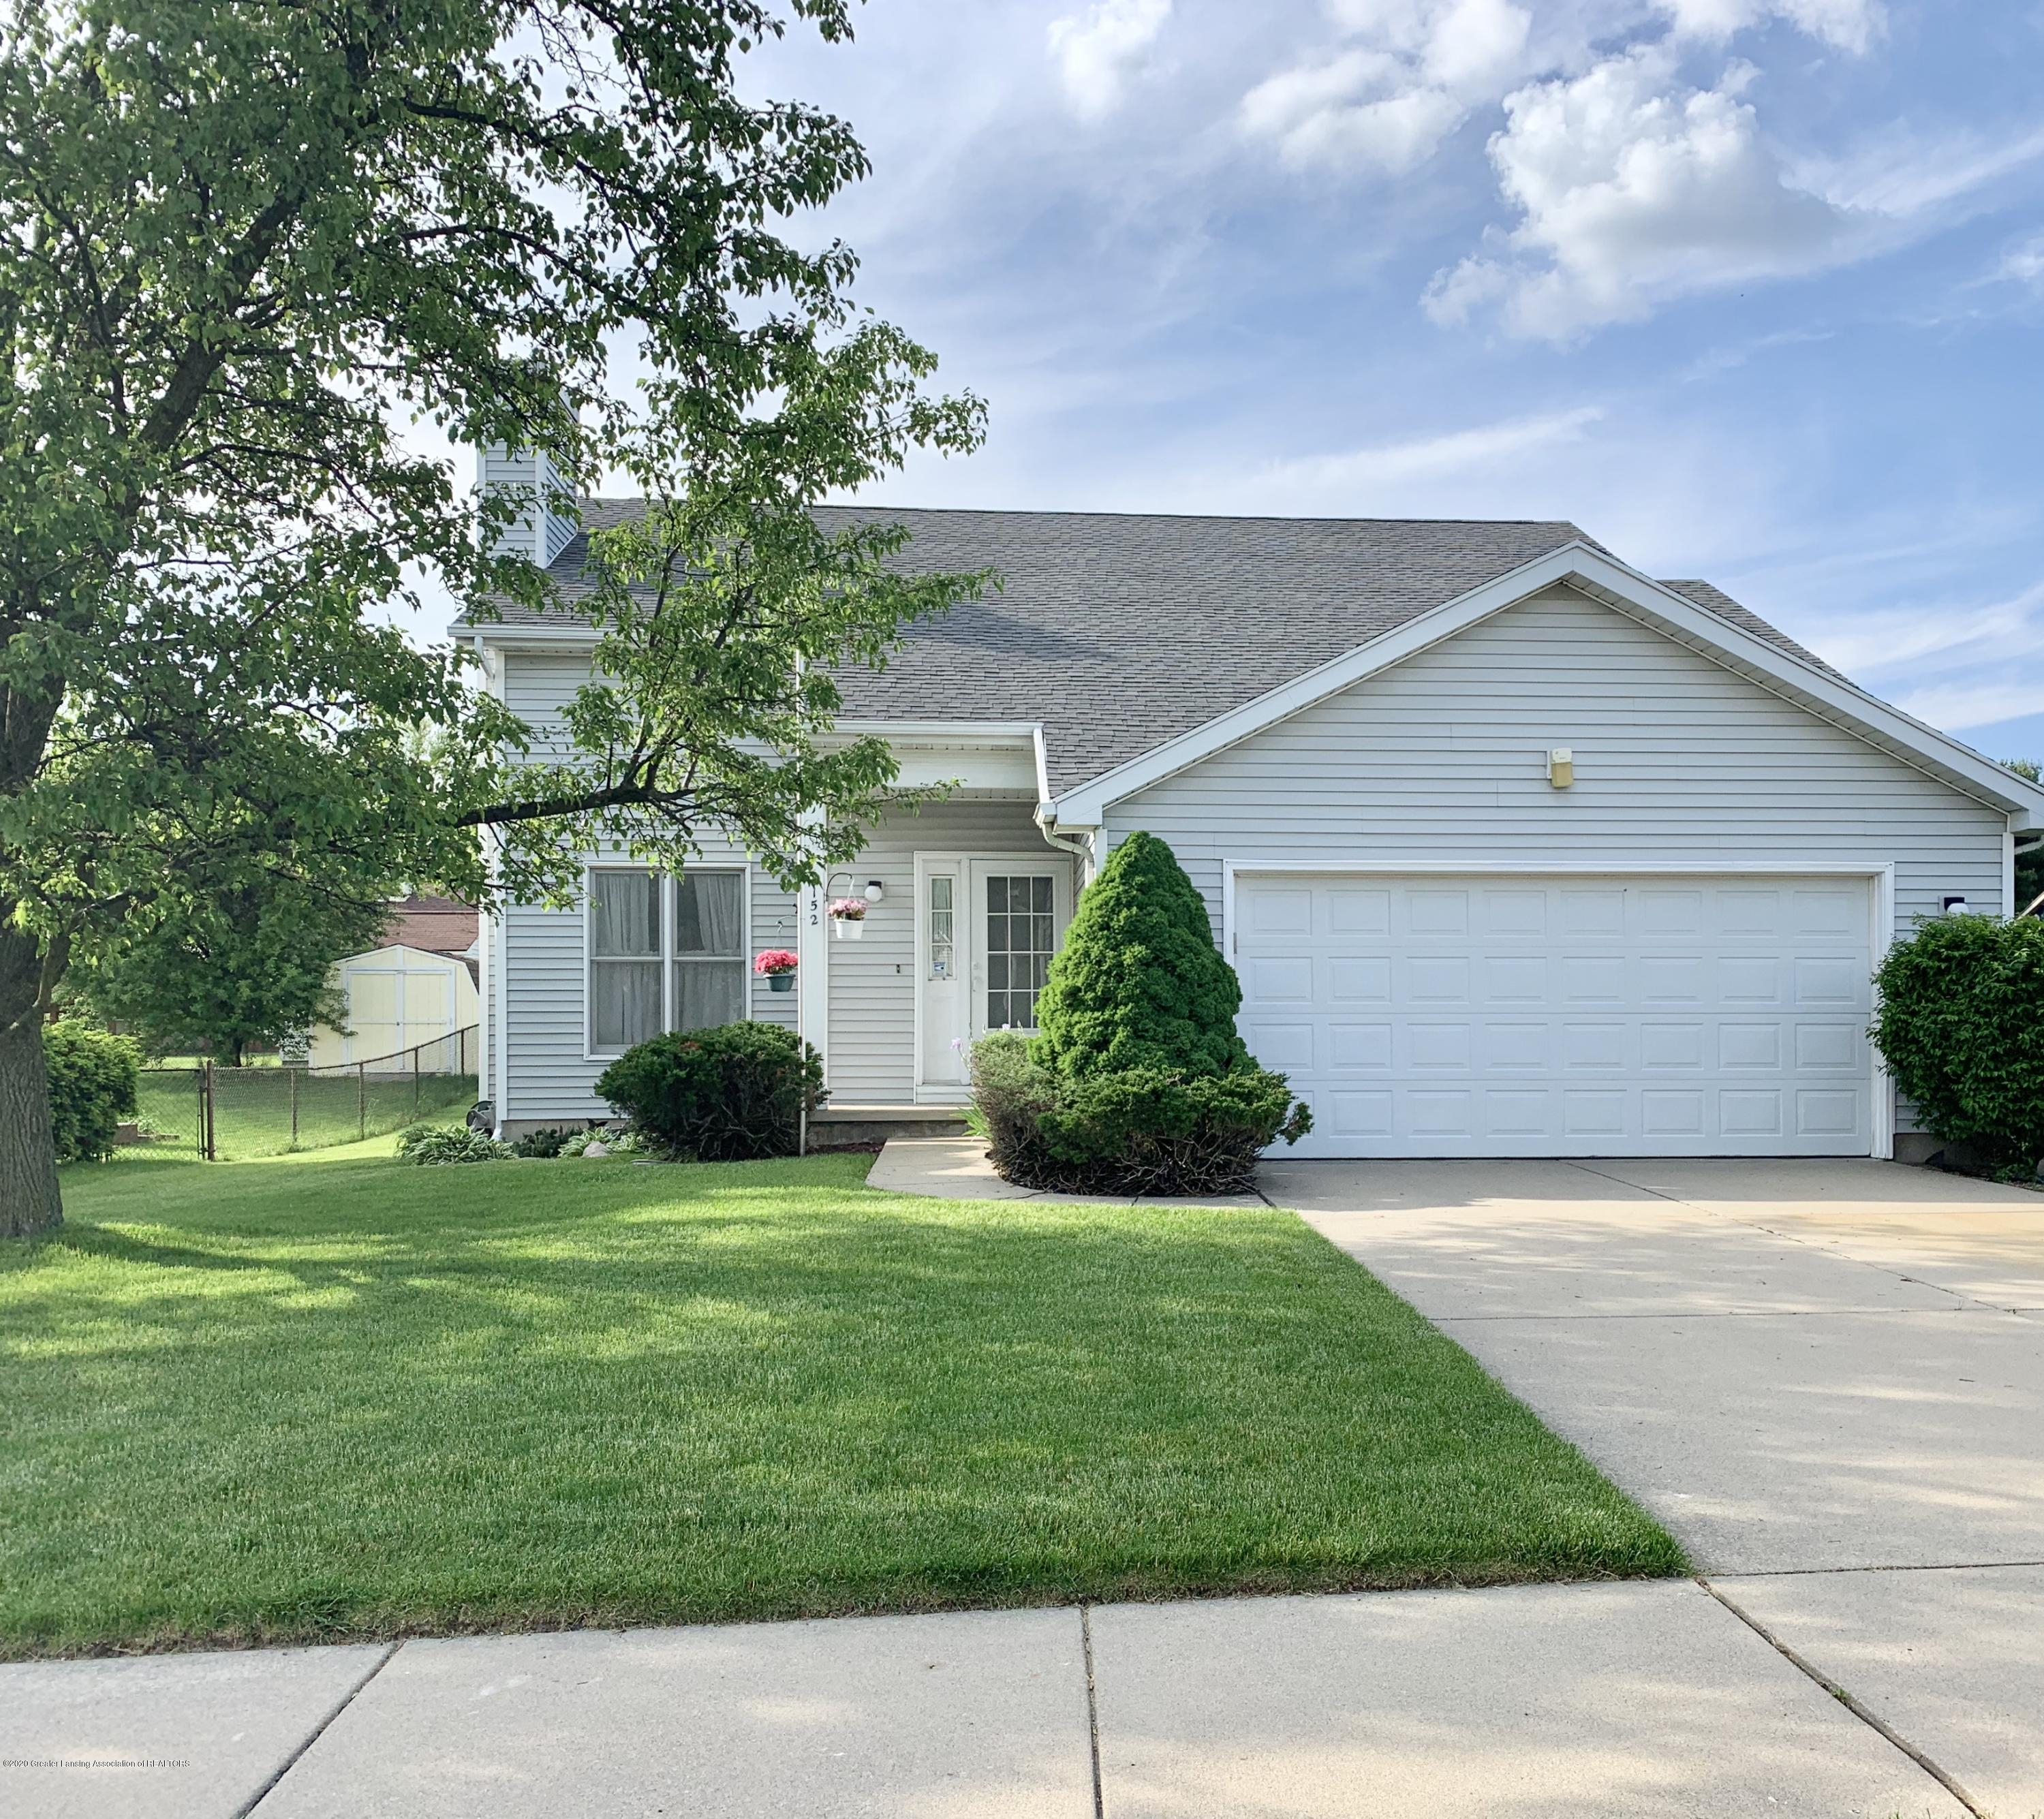 4152 Archwood Dr - FRONT - 1